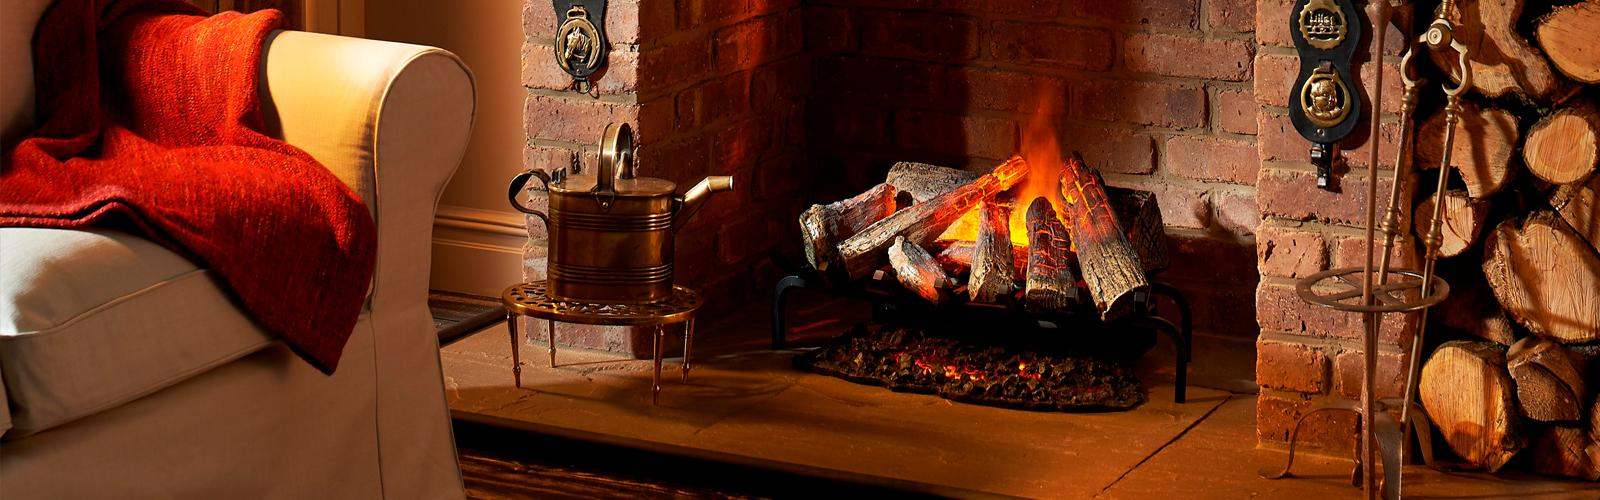 Electric Heating Basket Fires For The Home From Dimplex